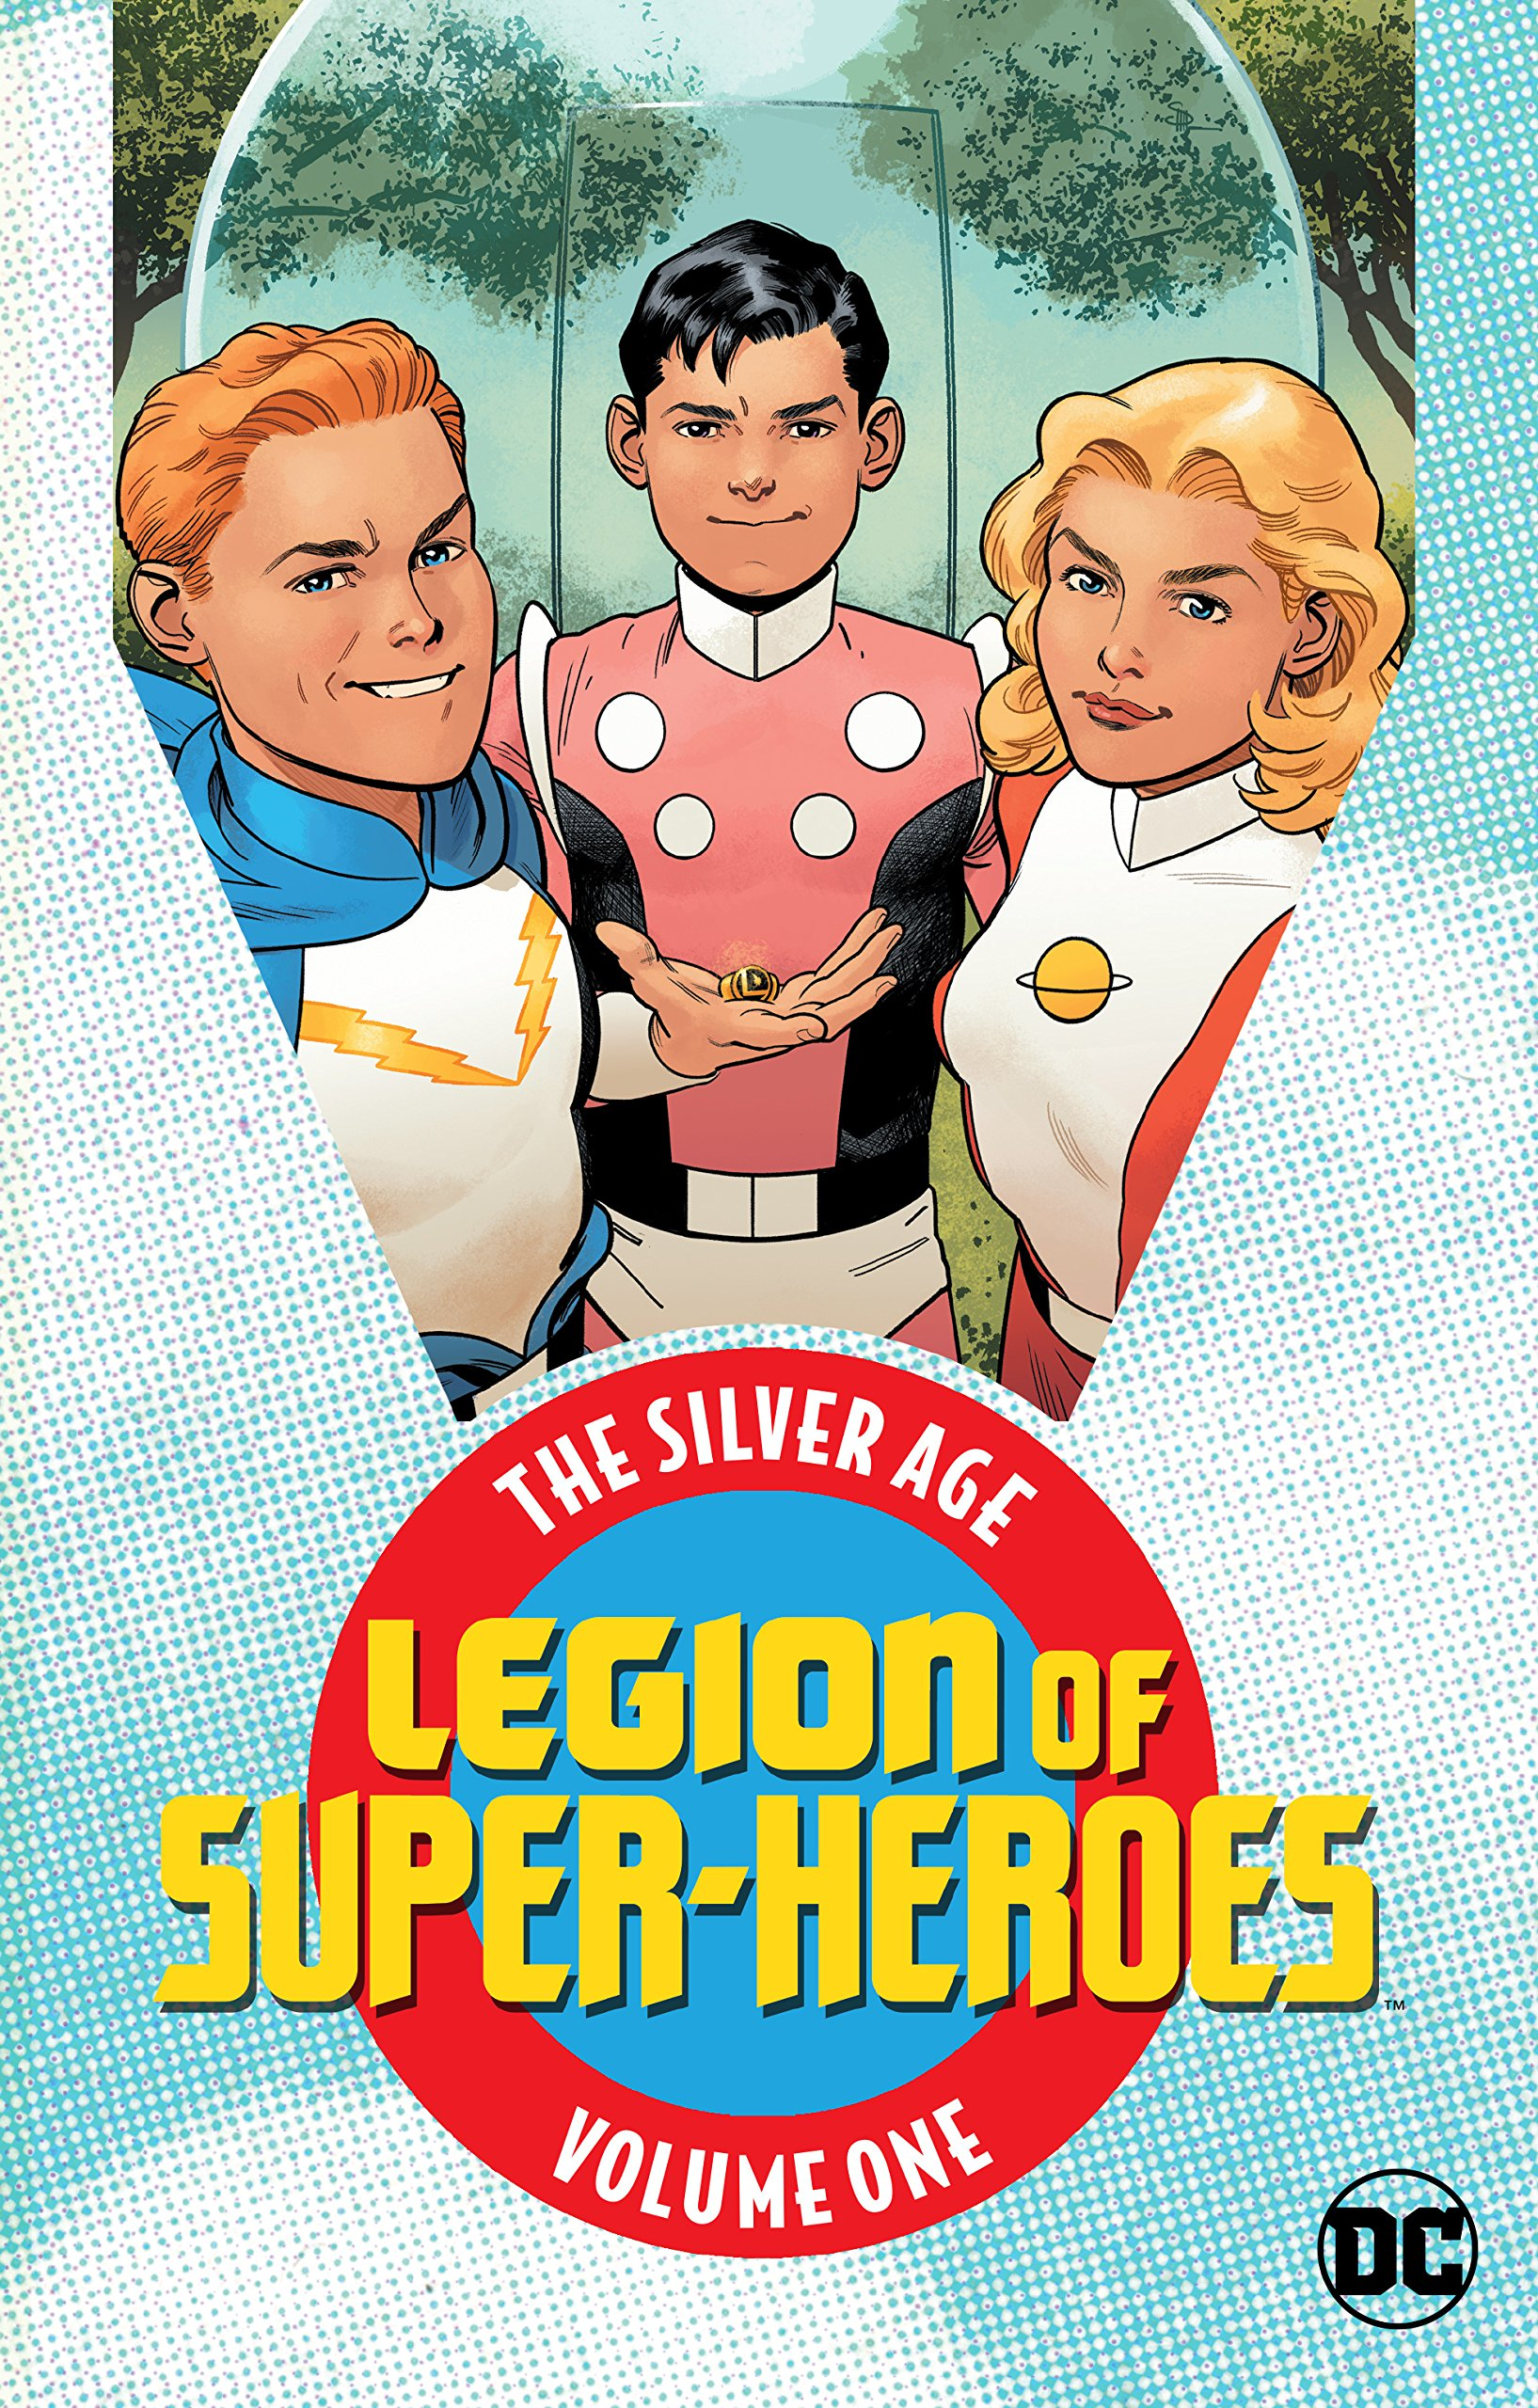 Legion of Super-Heroes - The Silver Age 1 - Volume One